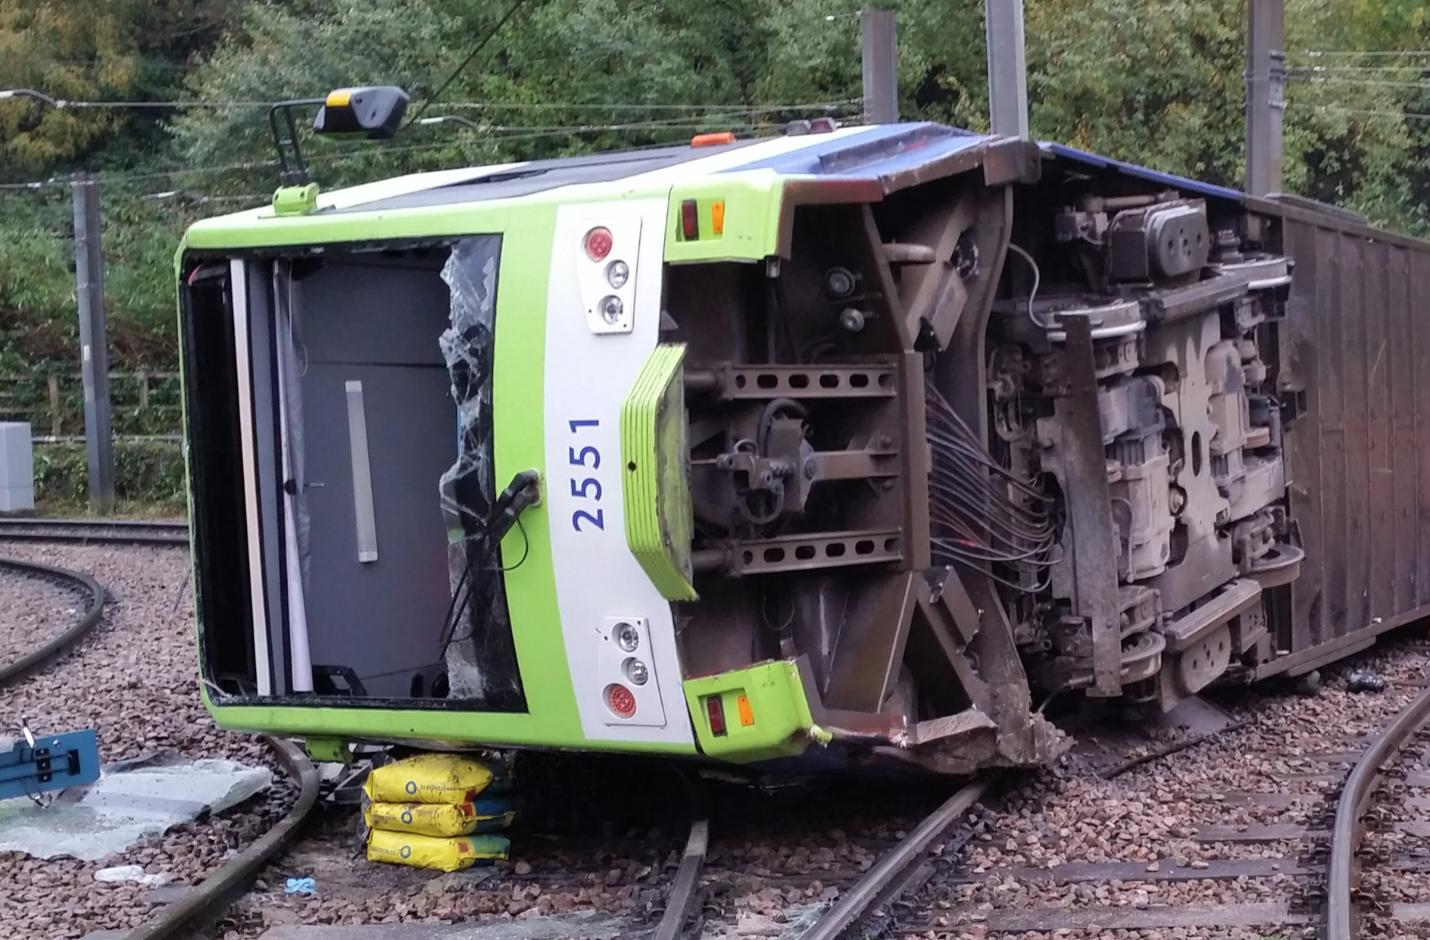 Croydon Tram Crash close-up